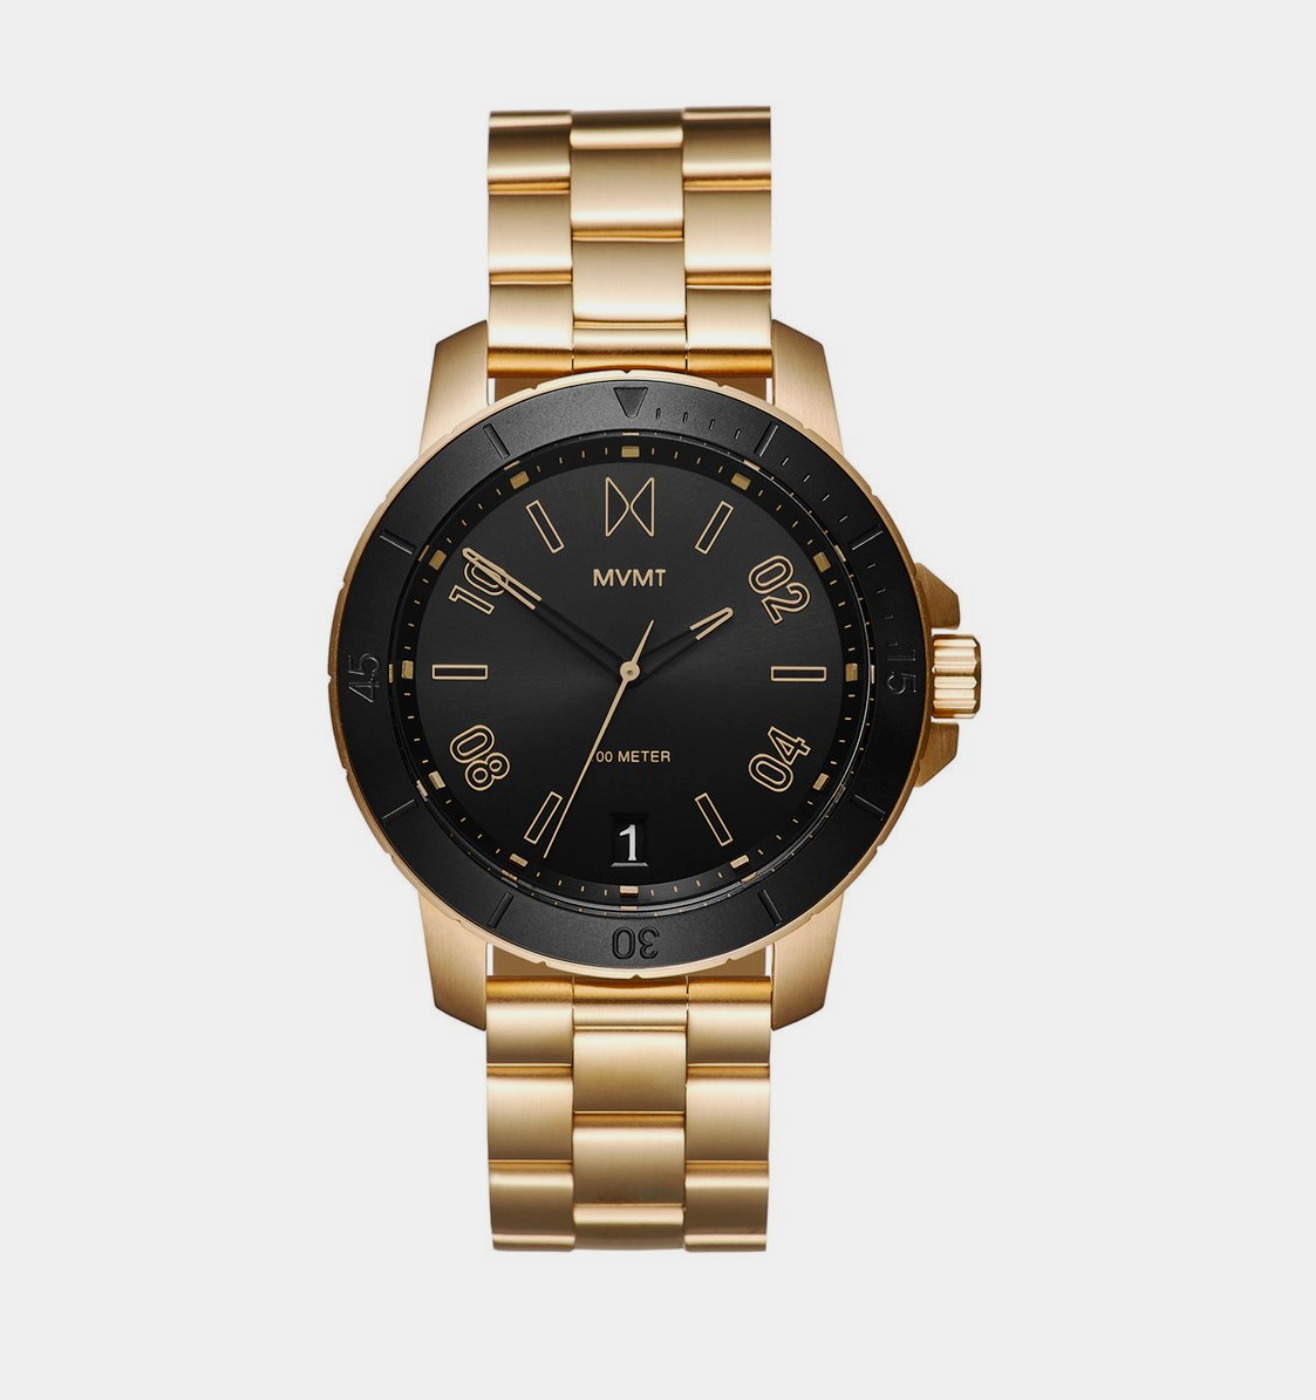 WATCH - Who doesn't love a nice watch? Check out MVMT's collection, ranging from $83 up to $300, perfect for the busy man.